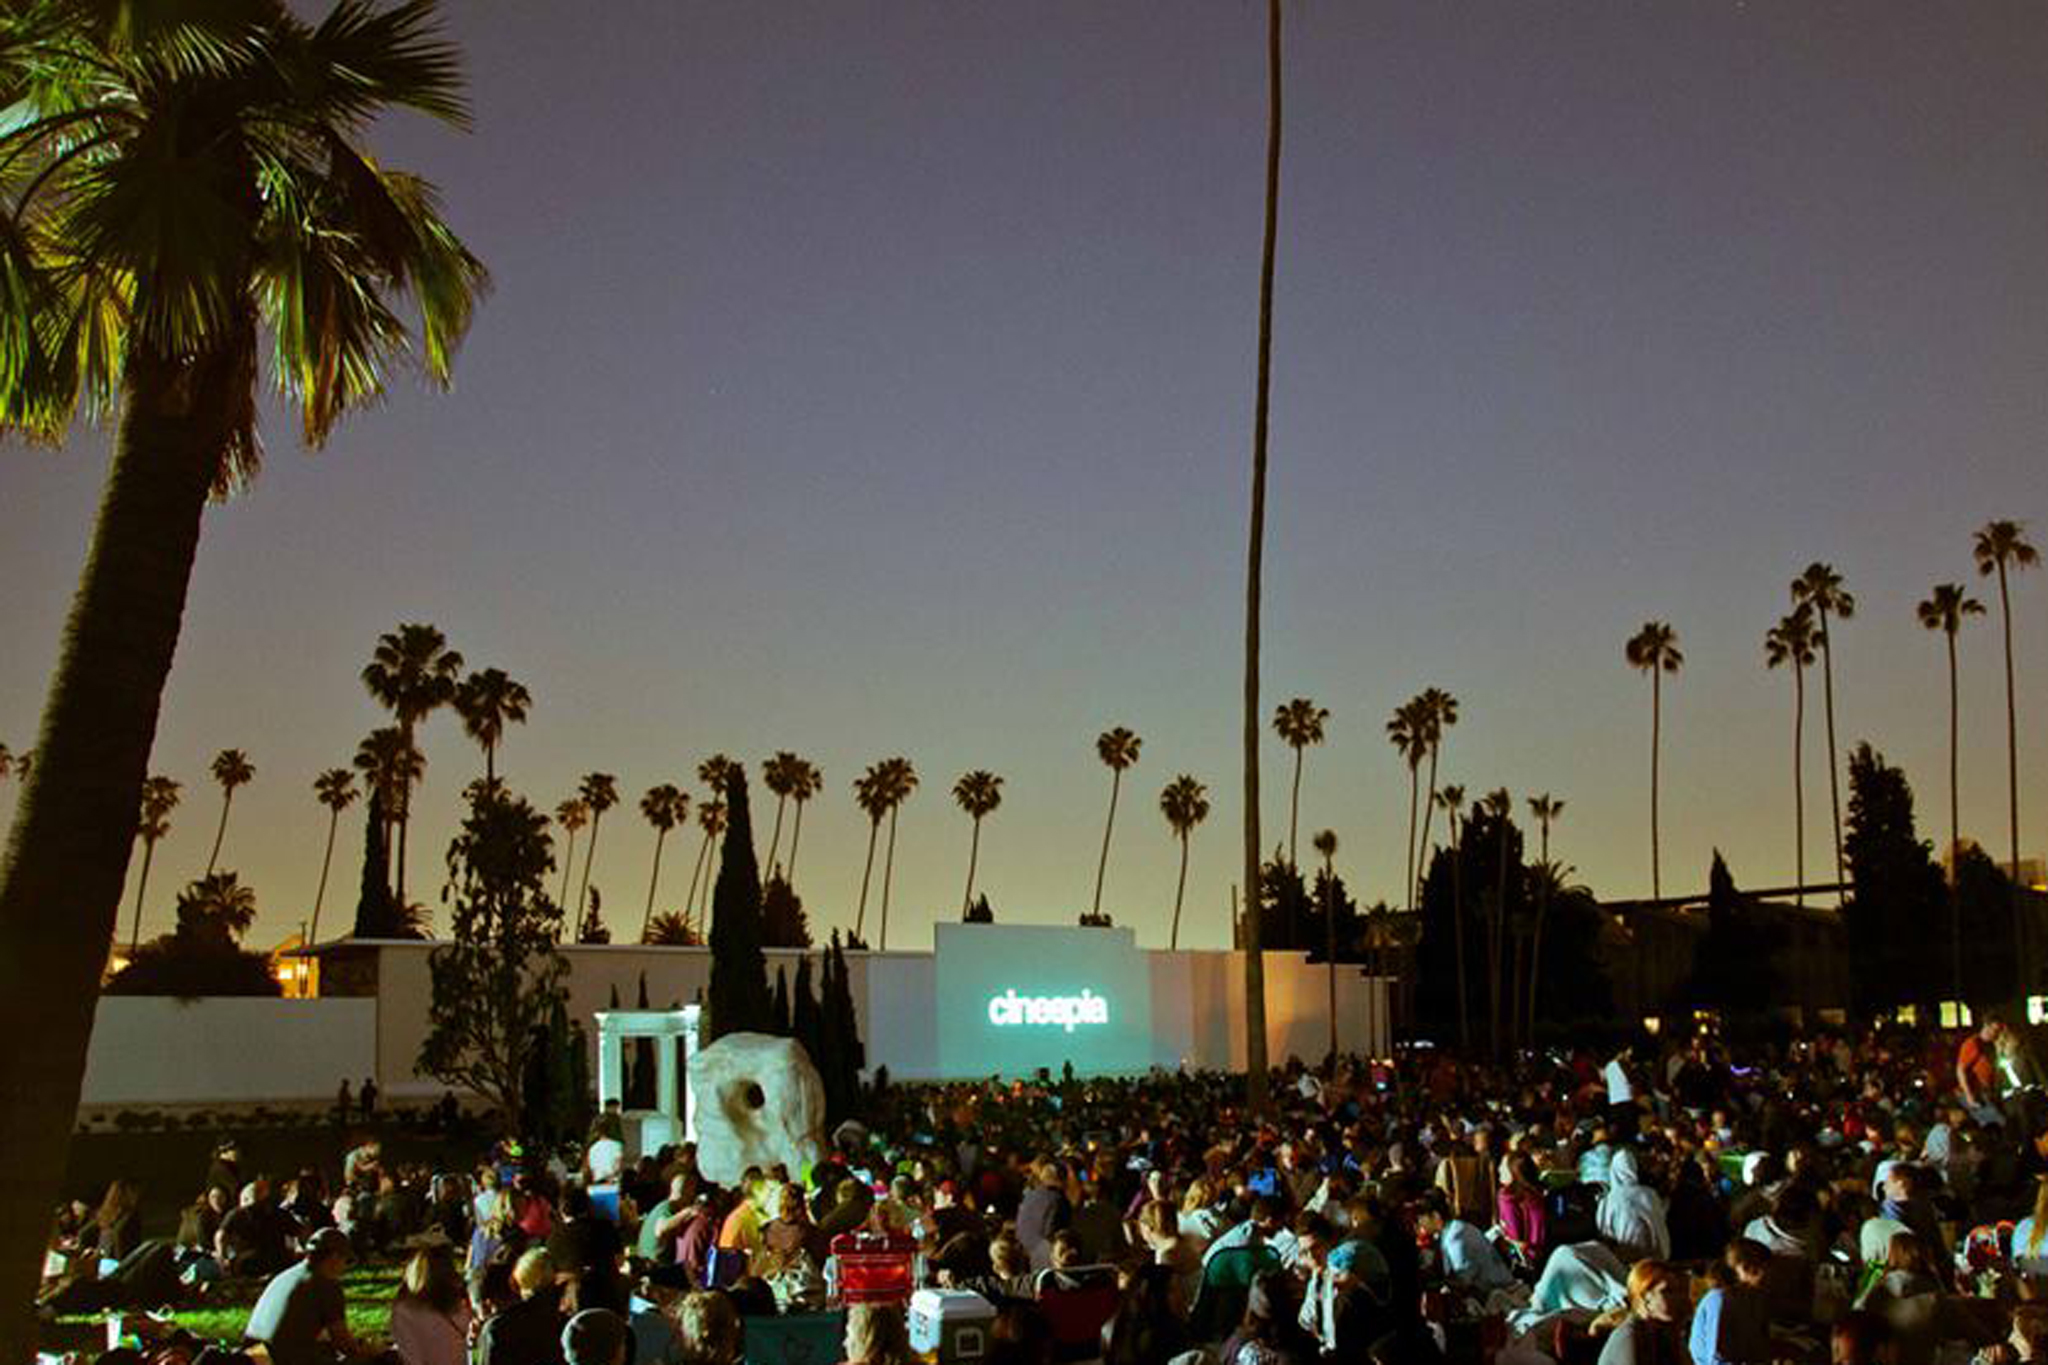 Best open-air places to watch movies in LA